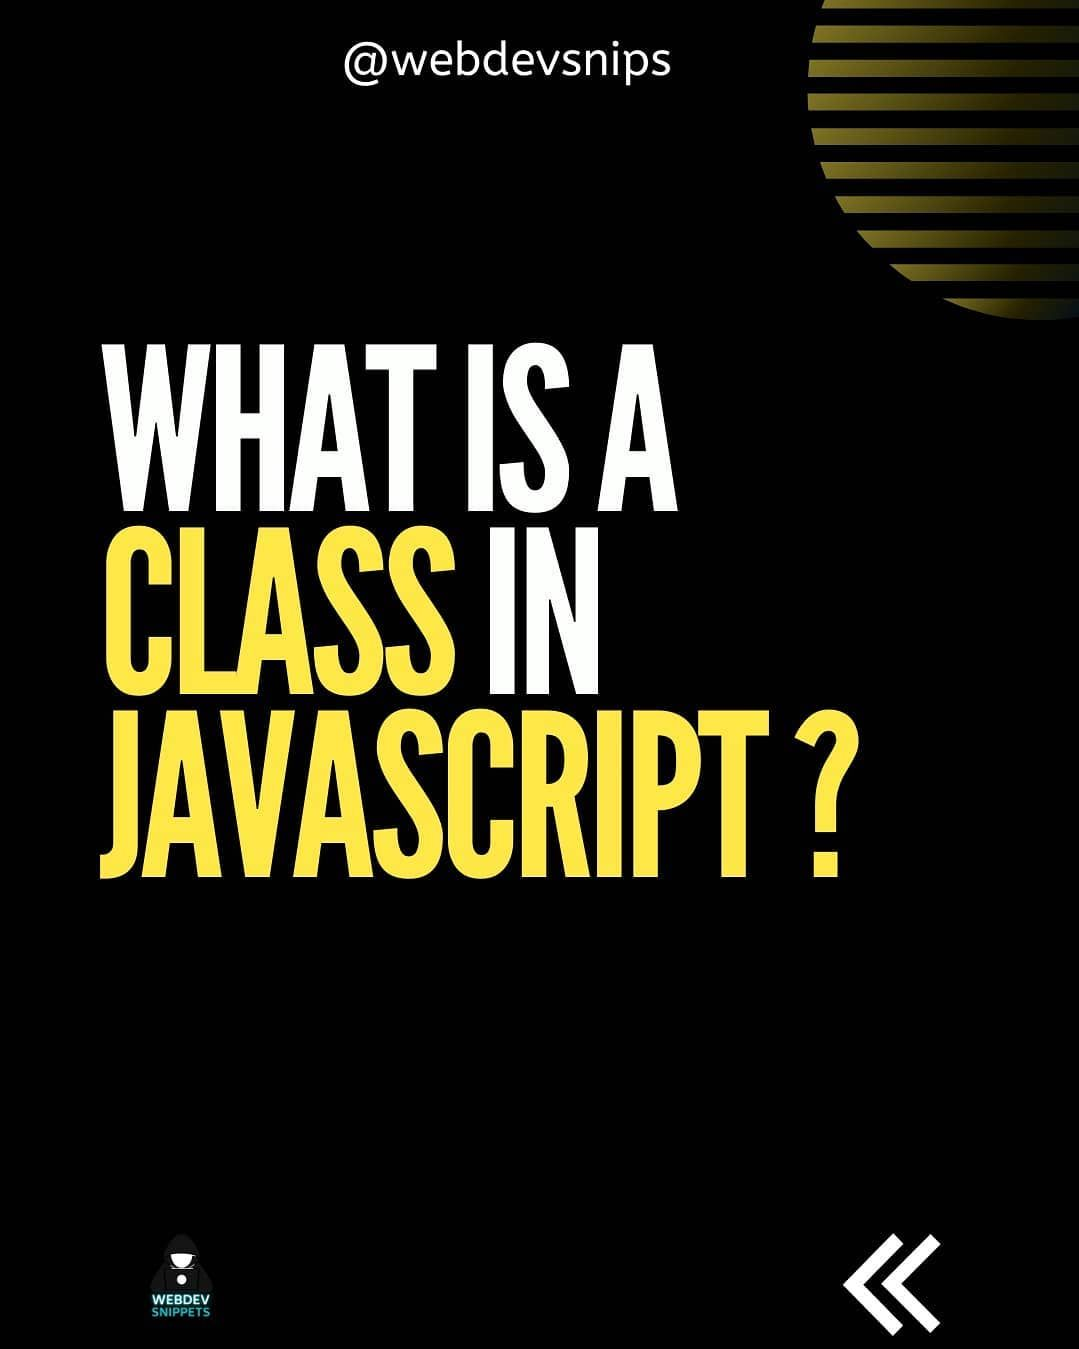 What is a class in javascript